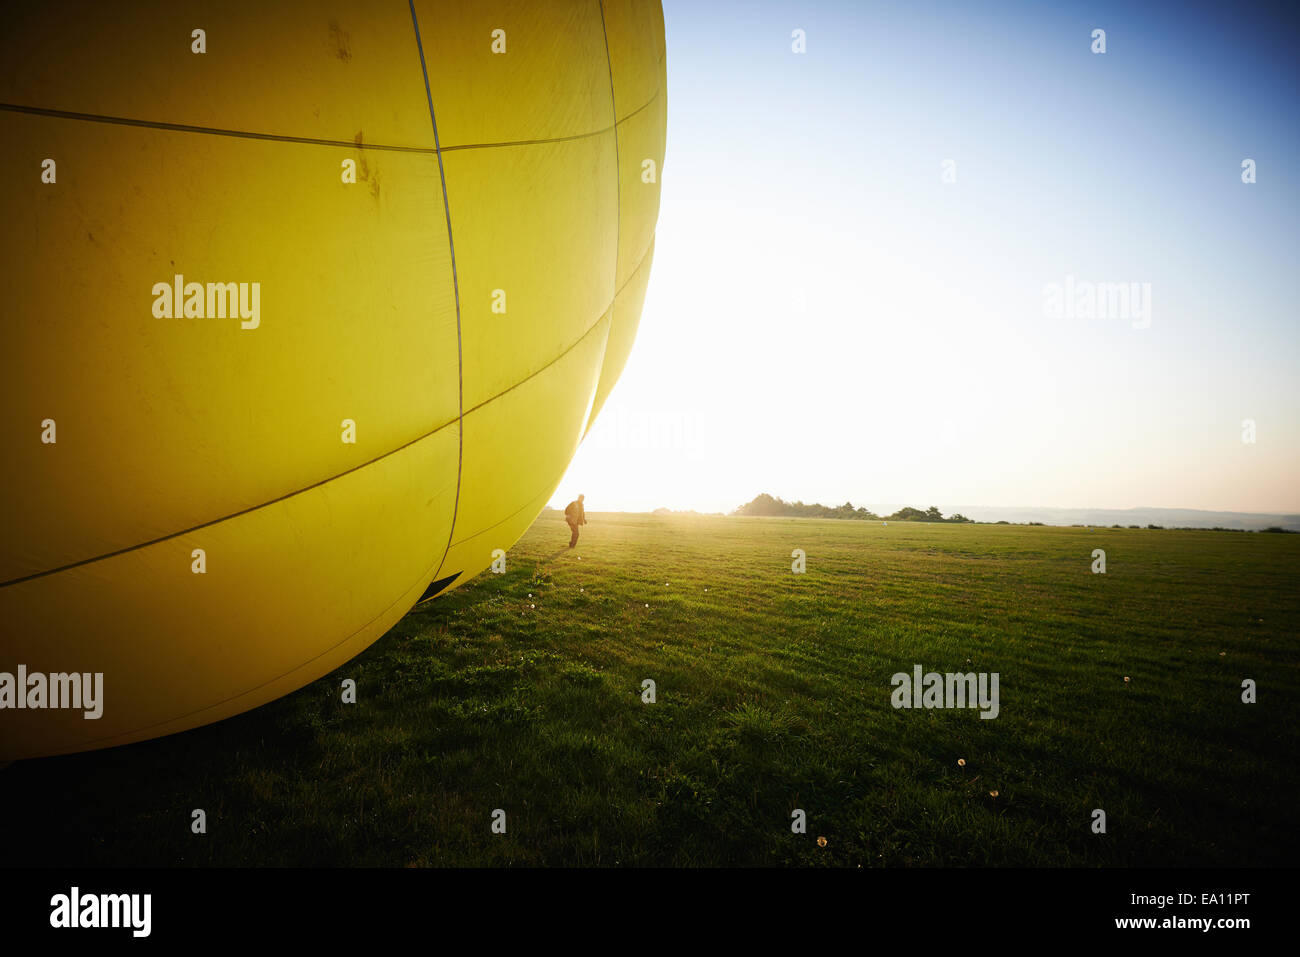 Inflated hot air balloon on field - Stock Image